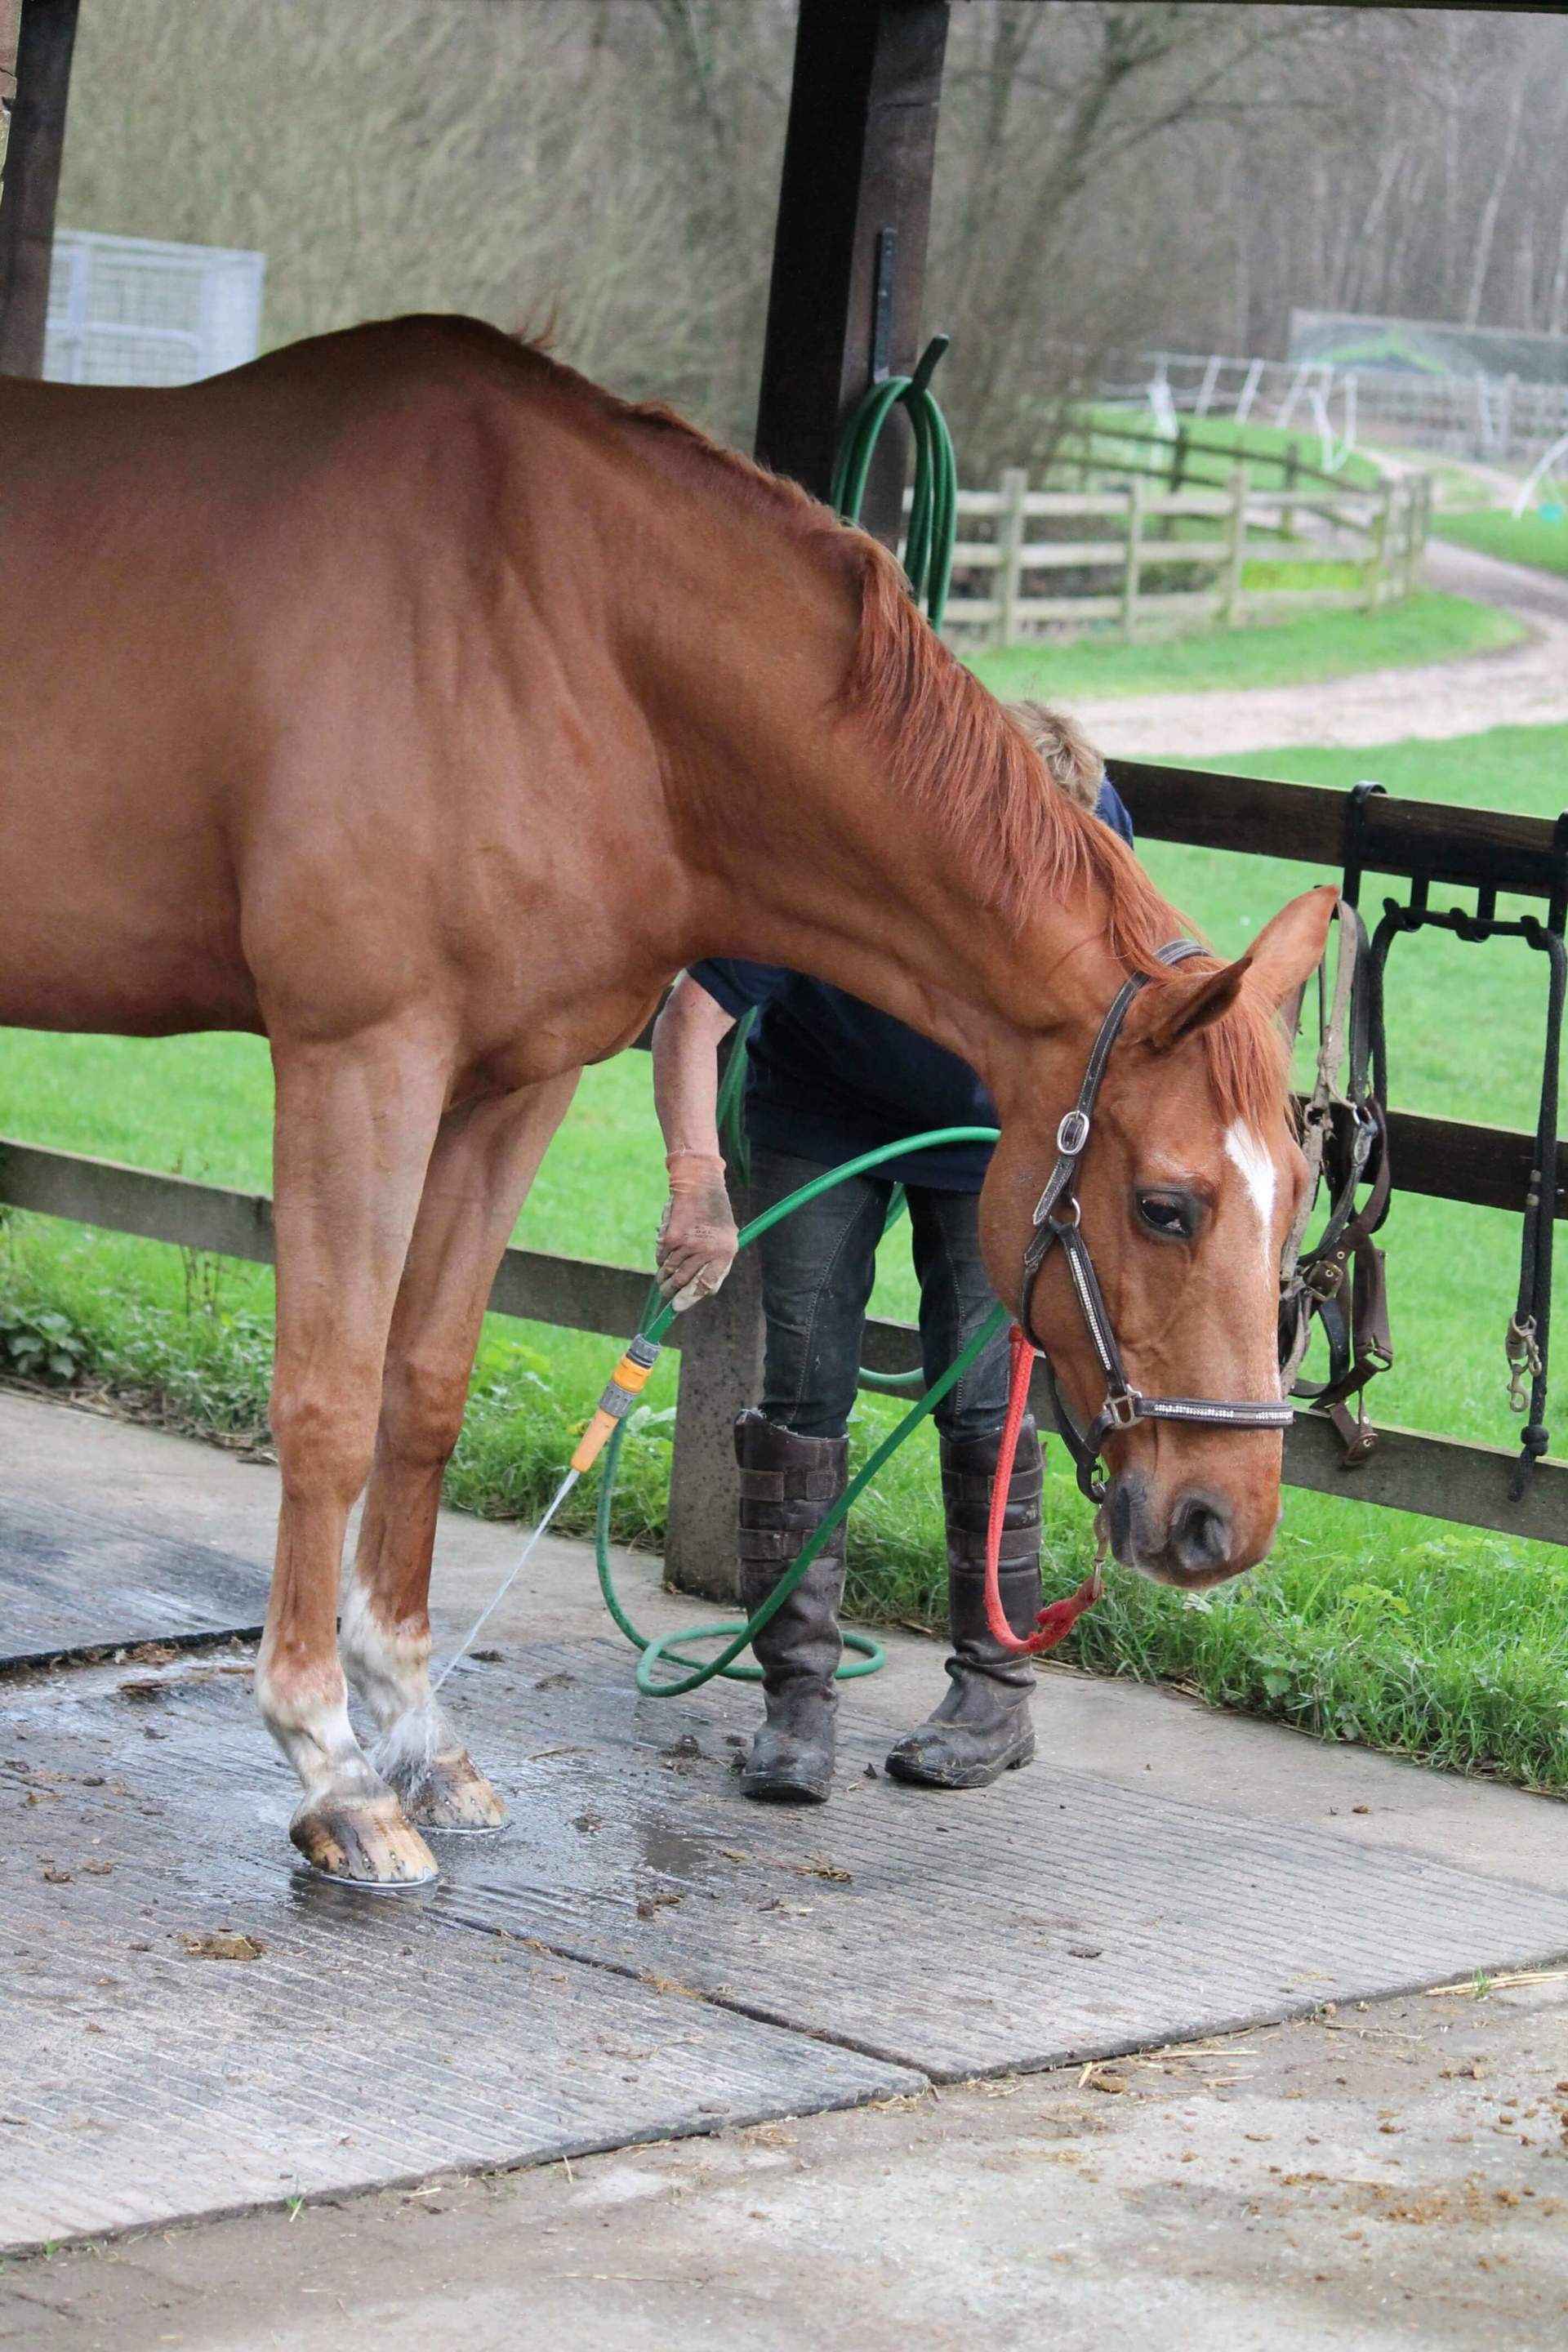 Horse's feet getting hosed down